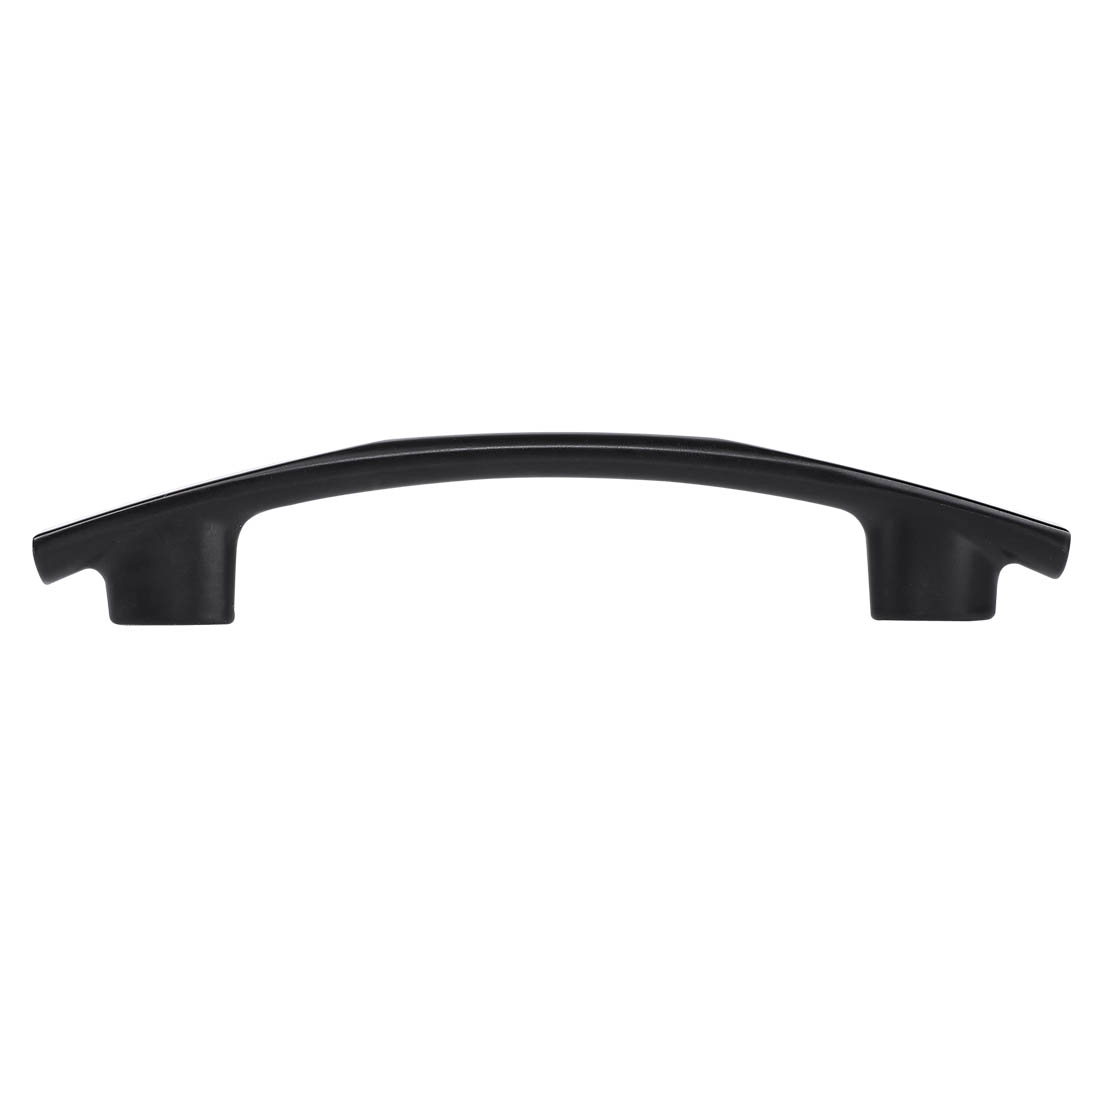 """Cabinet Handle Pull 3.8"""" Hole Center Painting for Cupboard Dresser, Black"""